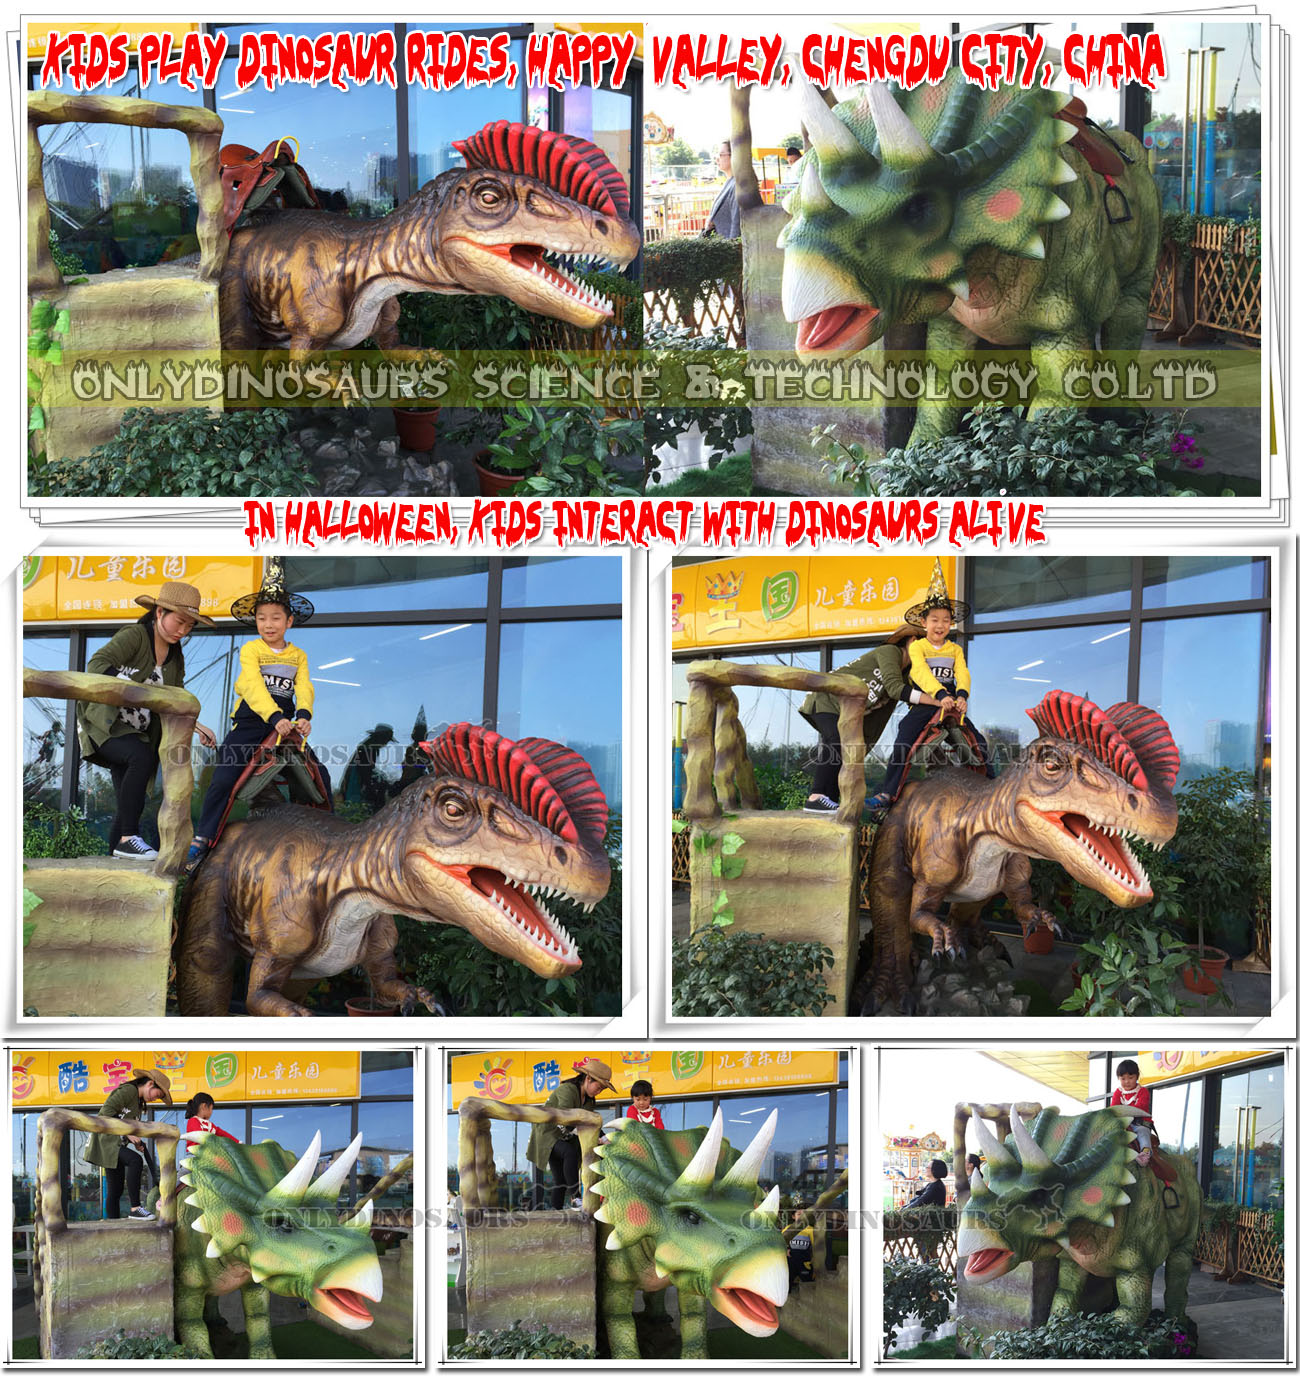 Kids Interact with Dinosaurs Alive